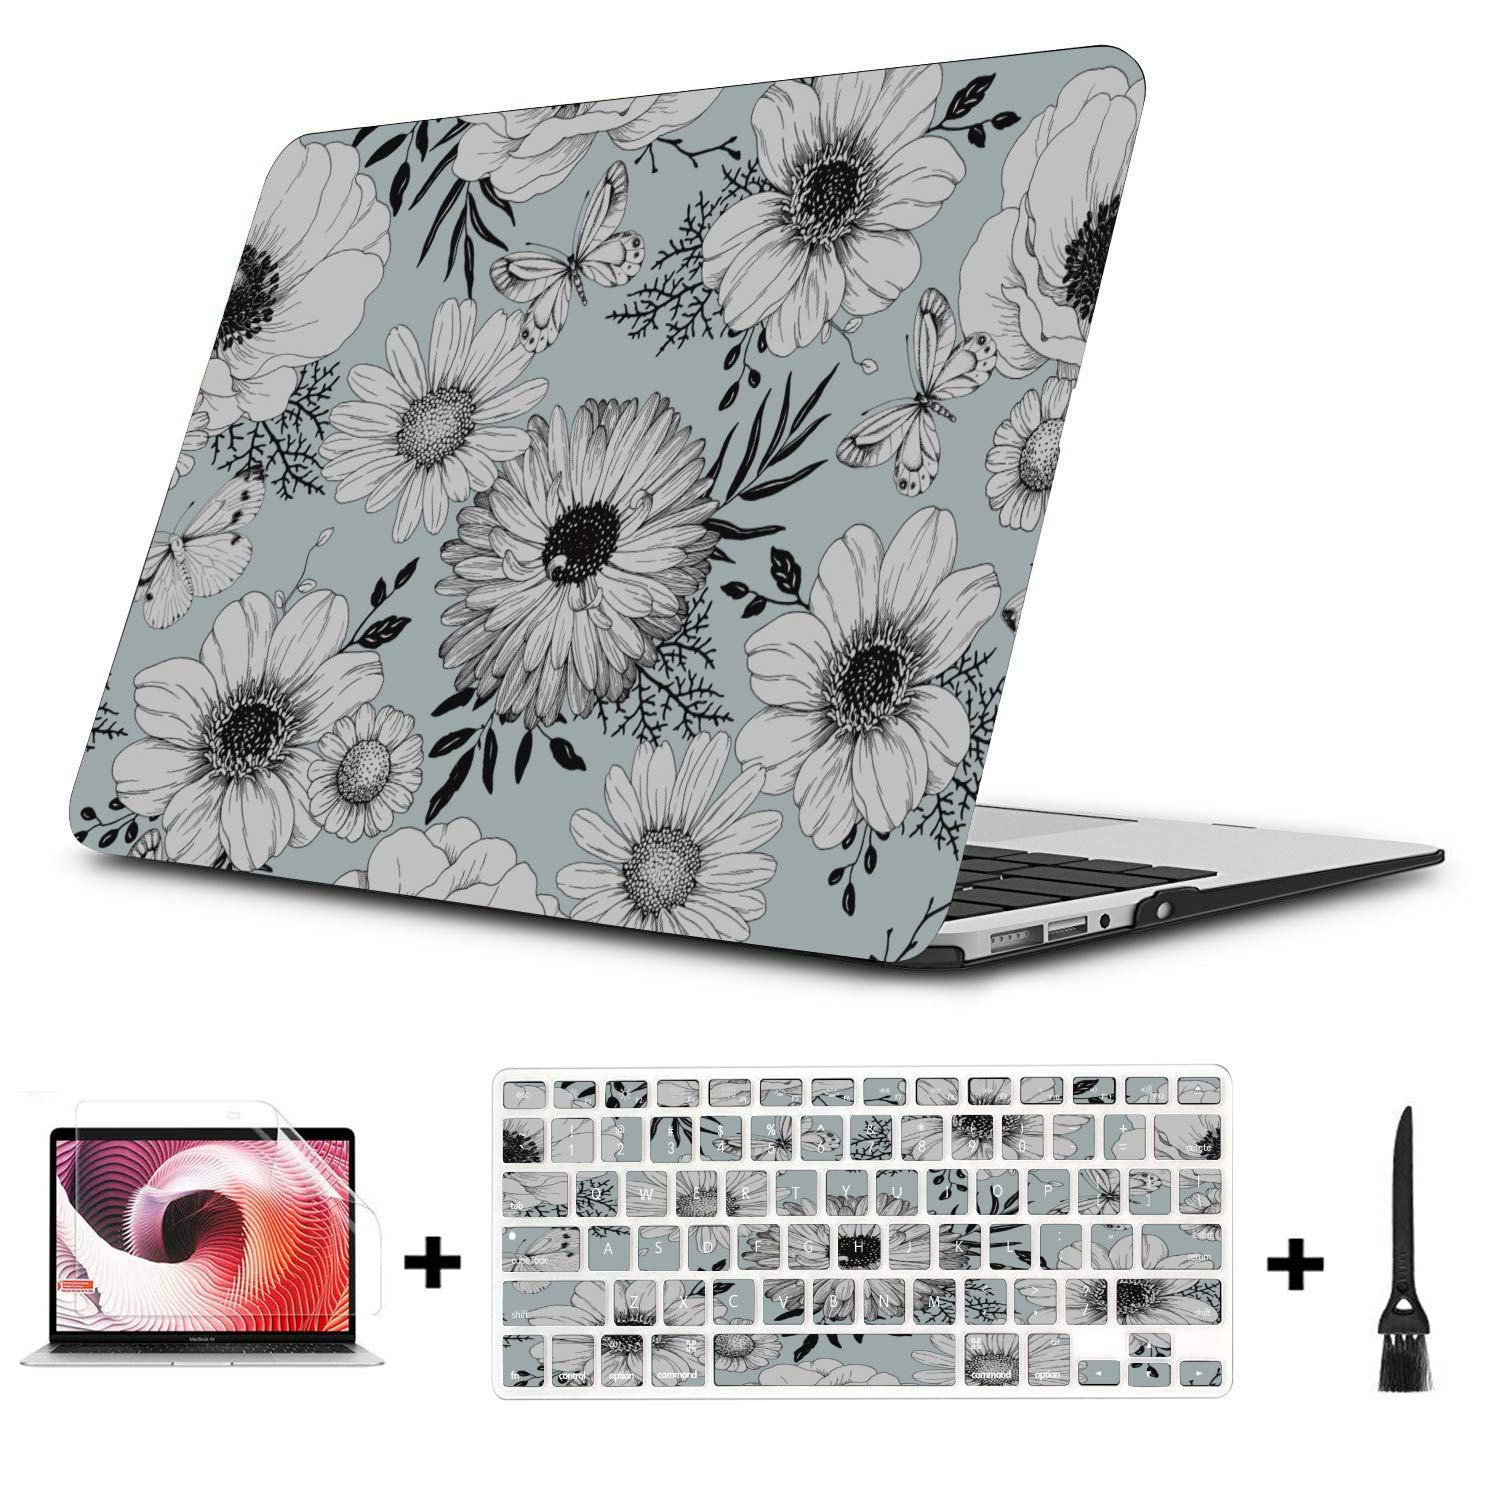 Mac Cover Spring Beautiful White Retro Dahlia Plastic Hard Shell Compatible Mac Air 11 Pro 13 15 Mac Pro Laptop Case Protection for MacBook 2016-2019 Version